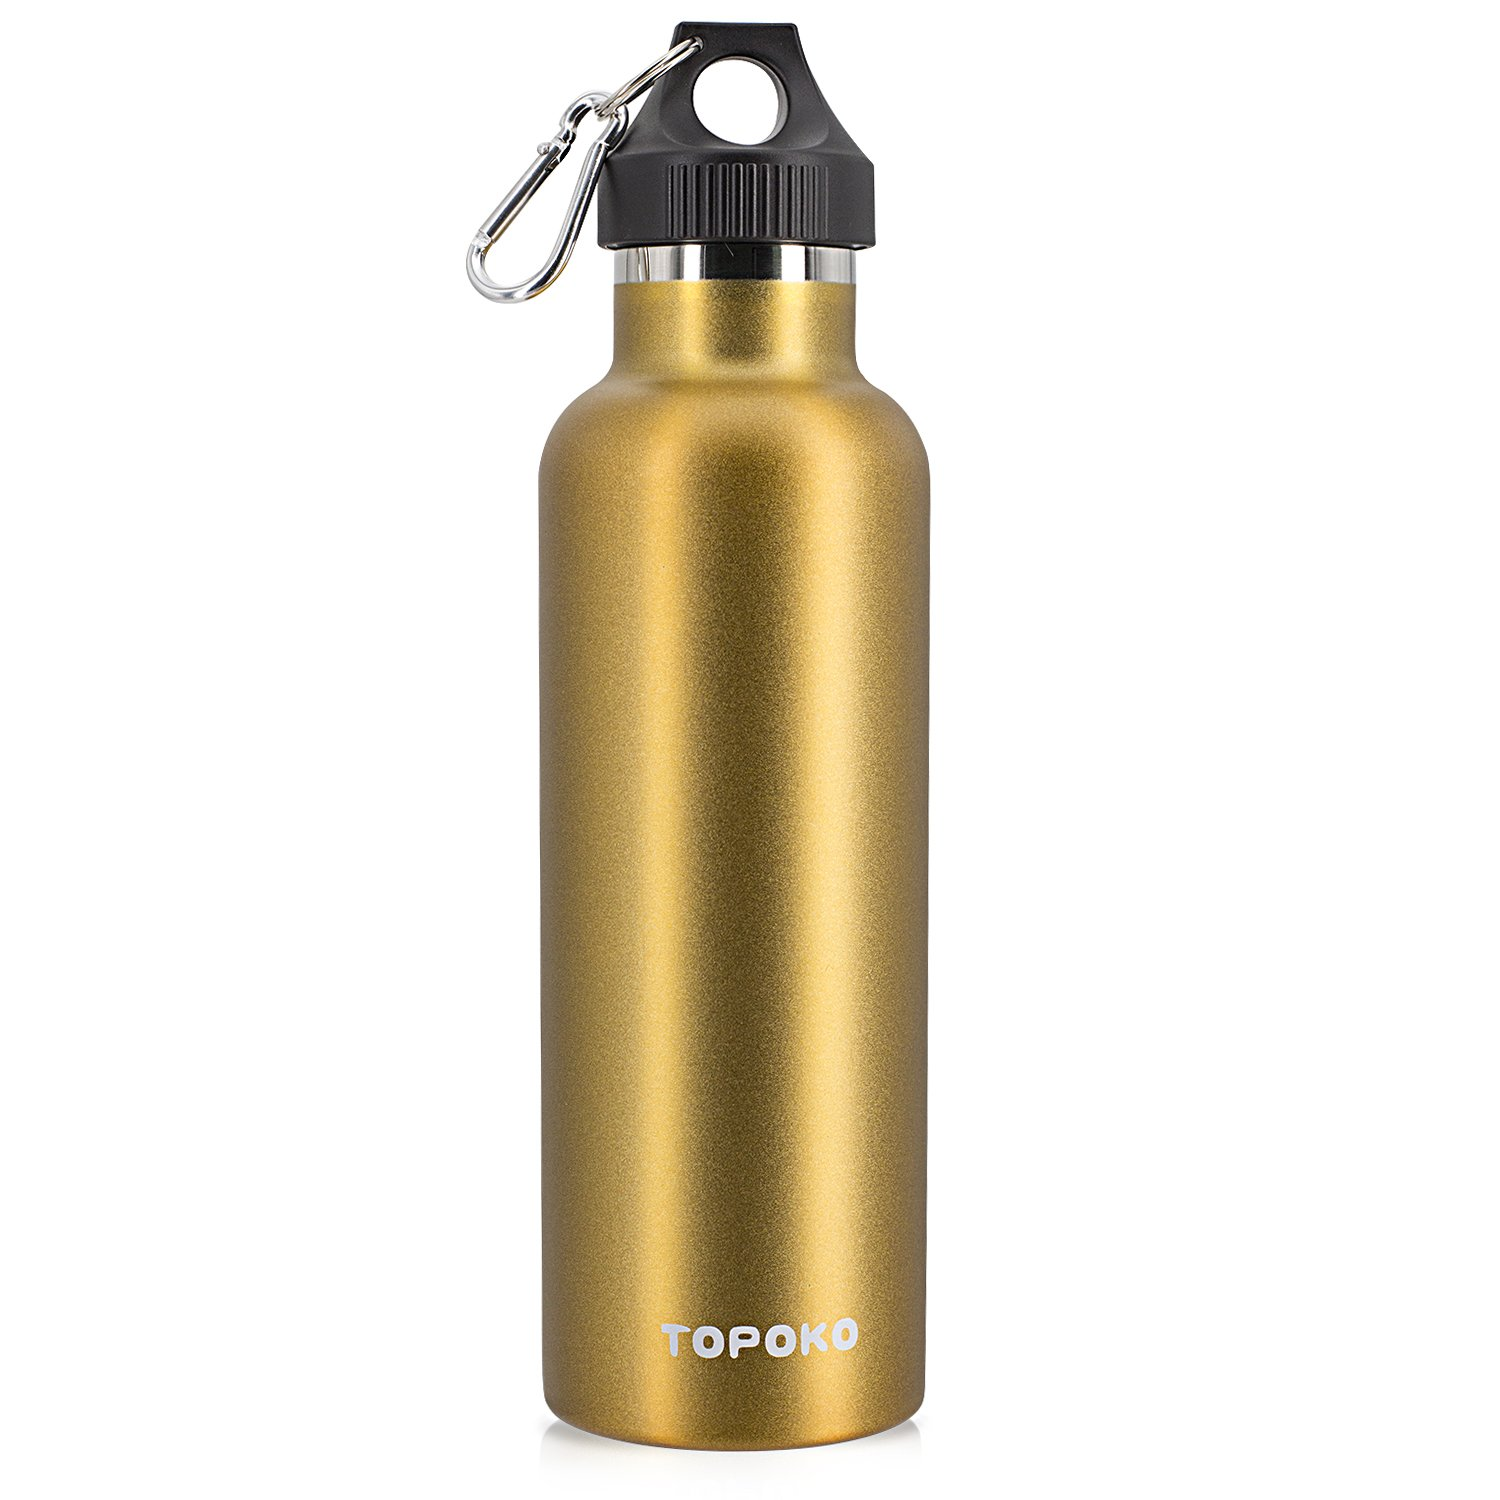 Stainless Steel Vacuum Insulated Water Bottle Double Wall - TOPOKO Top Quality Hydration Thermos - Camping Hiking Travel No Leak Rust Resistant Colored - 25 oz, Gold by TOPOKO (Image #2)